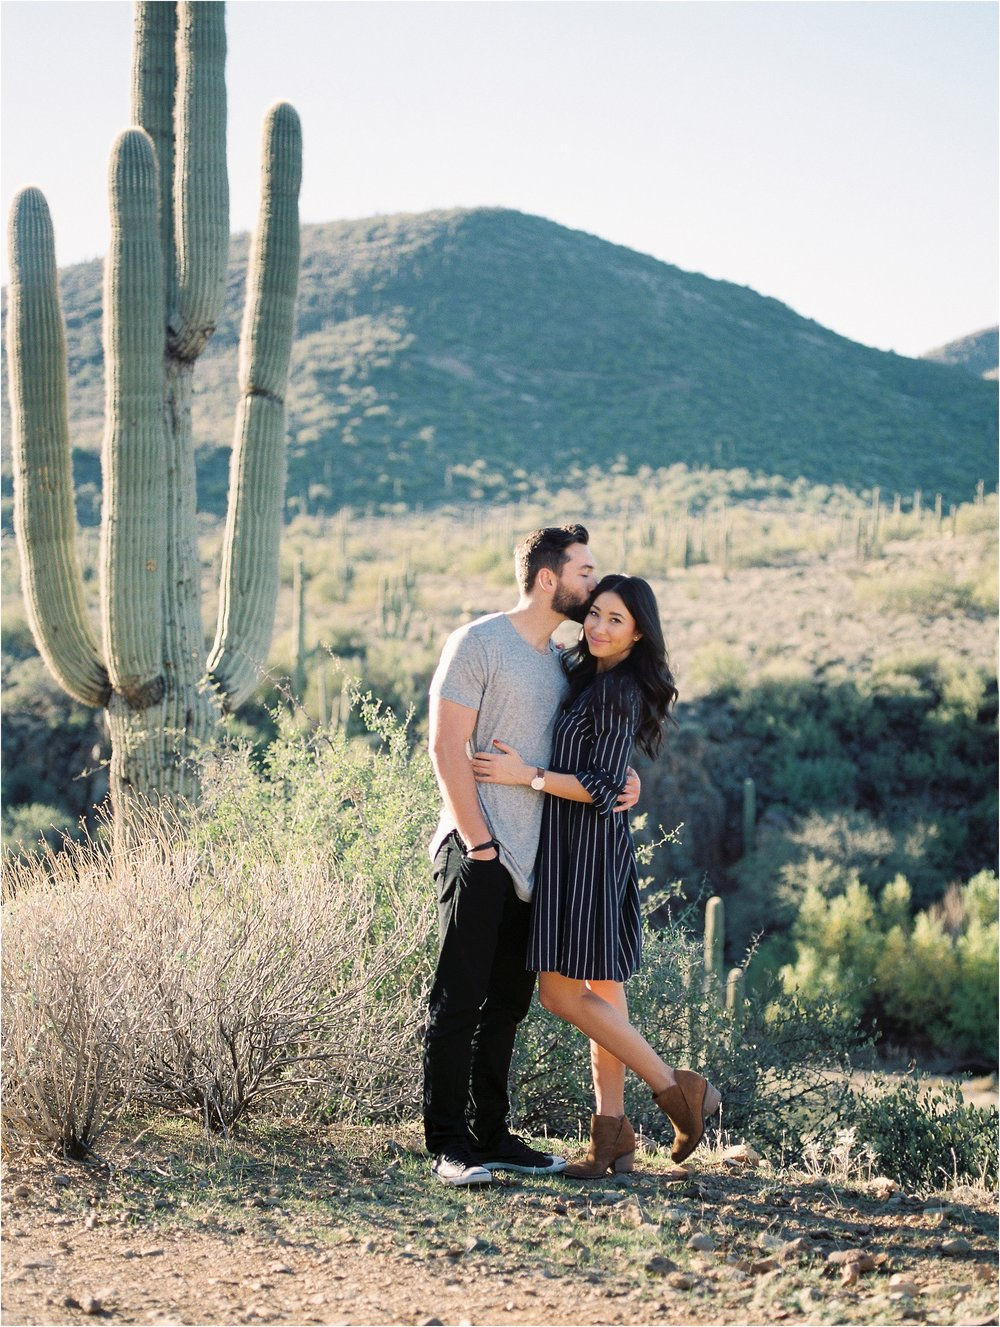 Sarah Jane Photography Film Hybrid Scottsdale Phoenix Arizona Destination Wedding Photographer Sakura Colin Bloguettes cave creek desert_0015.jpg